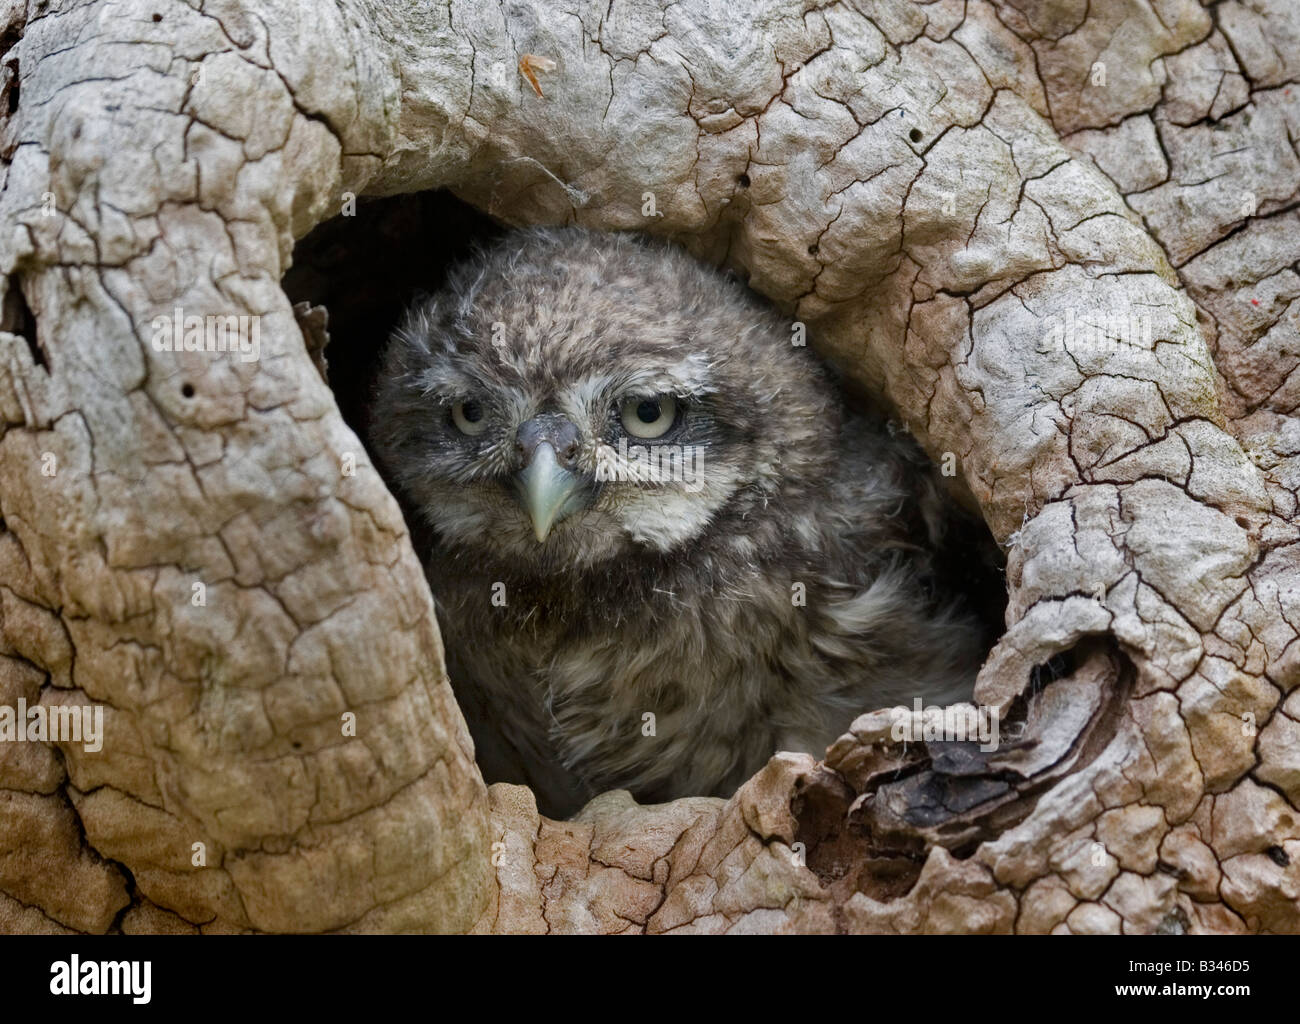 Baby Little Owl looking out of nest, portrait - Stock Image